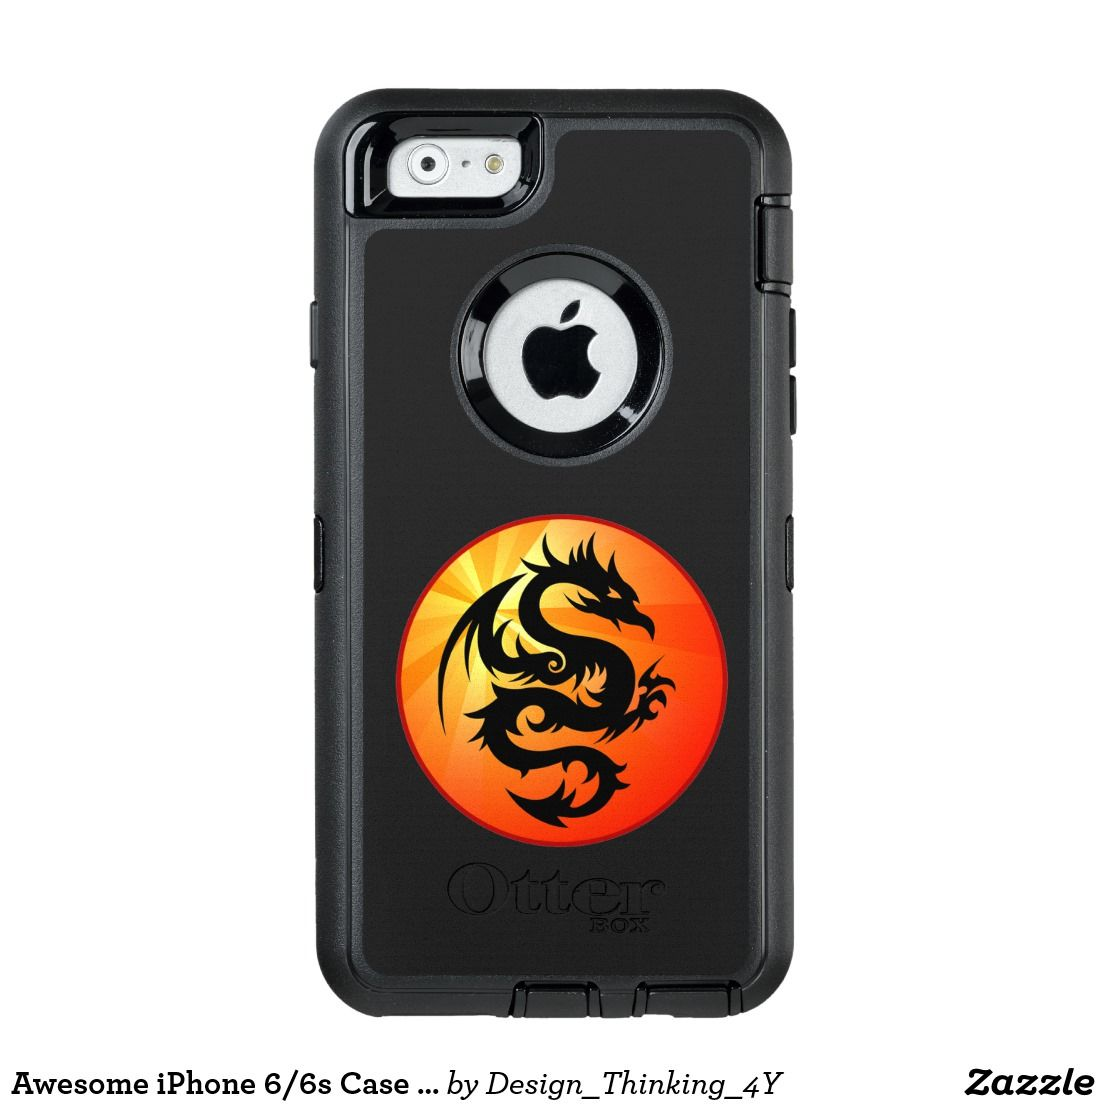 Awesome iphone 66s case in dragon design